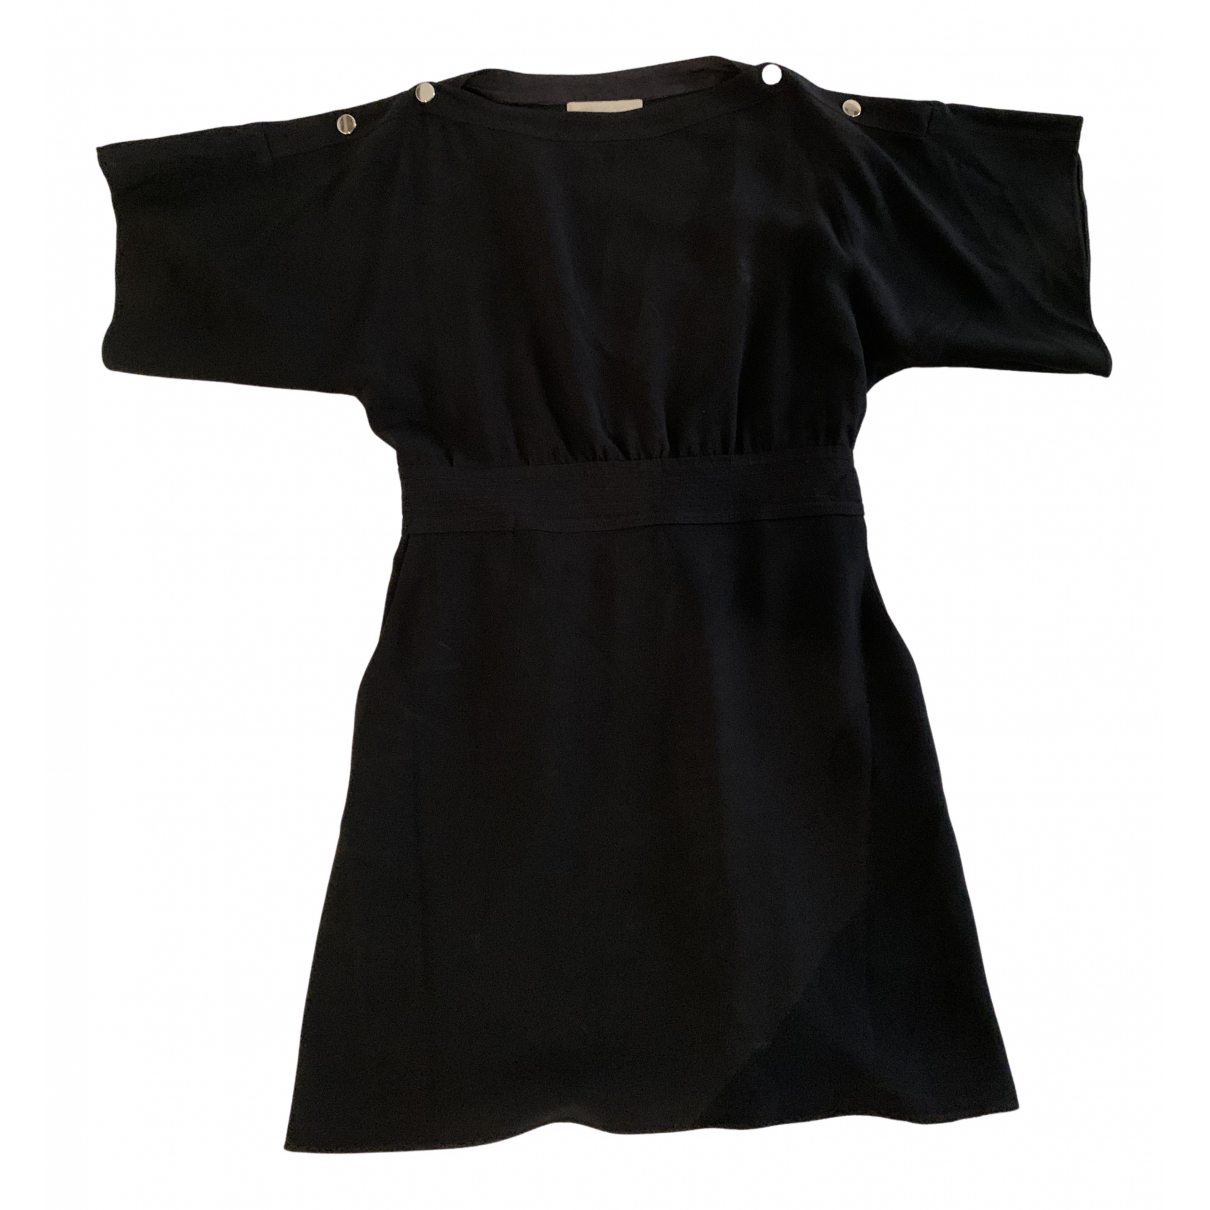 Vanessa Bruno N Black Cotton dress for Women 36 FR